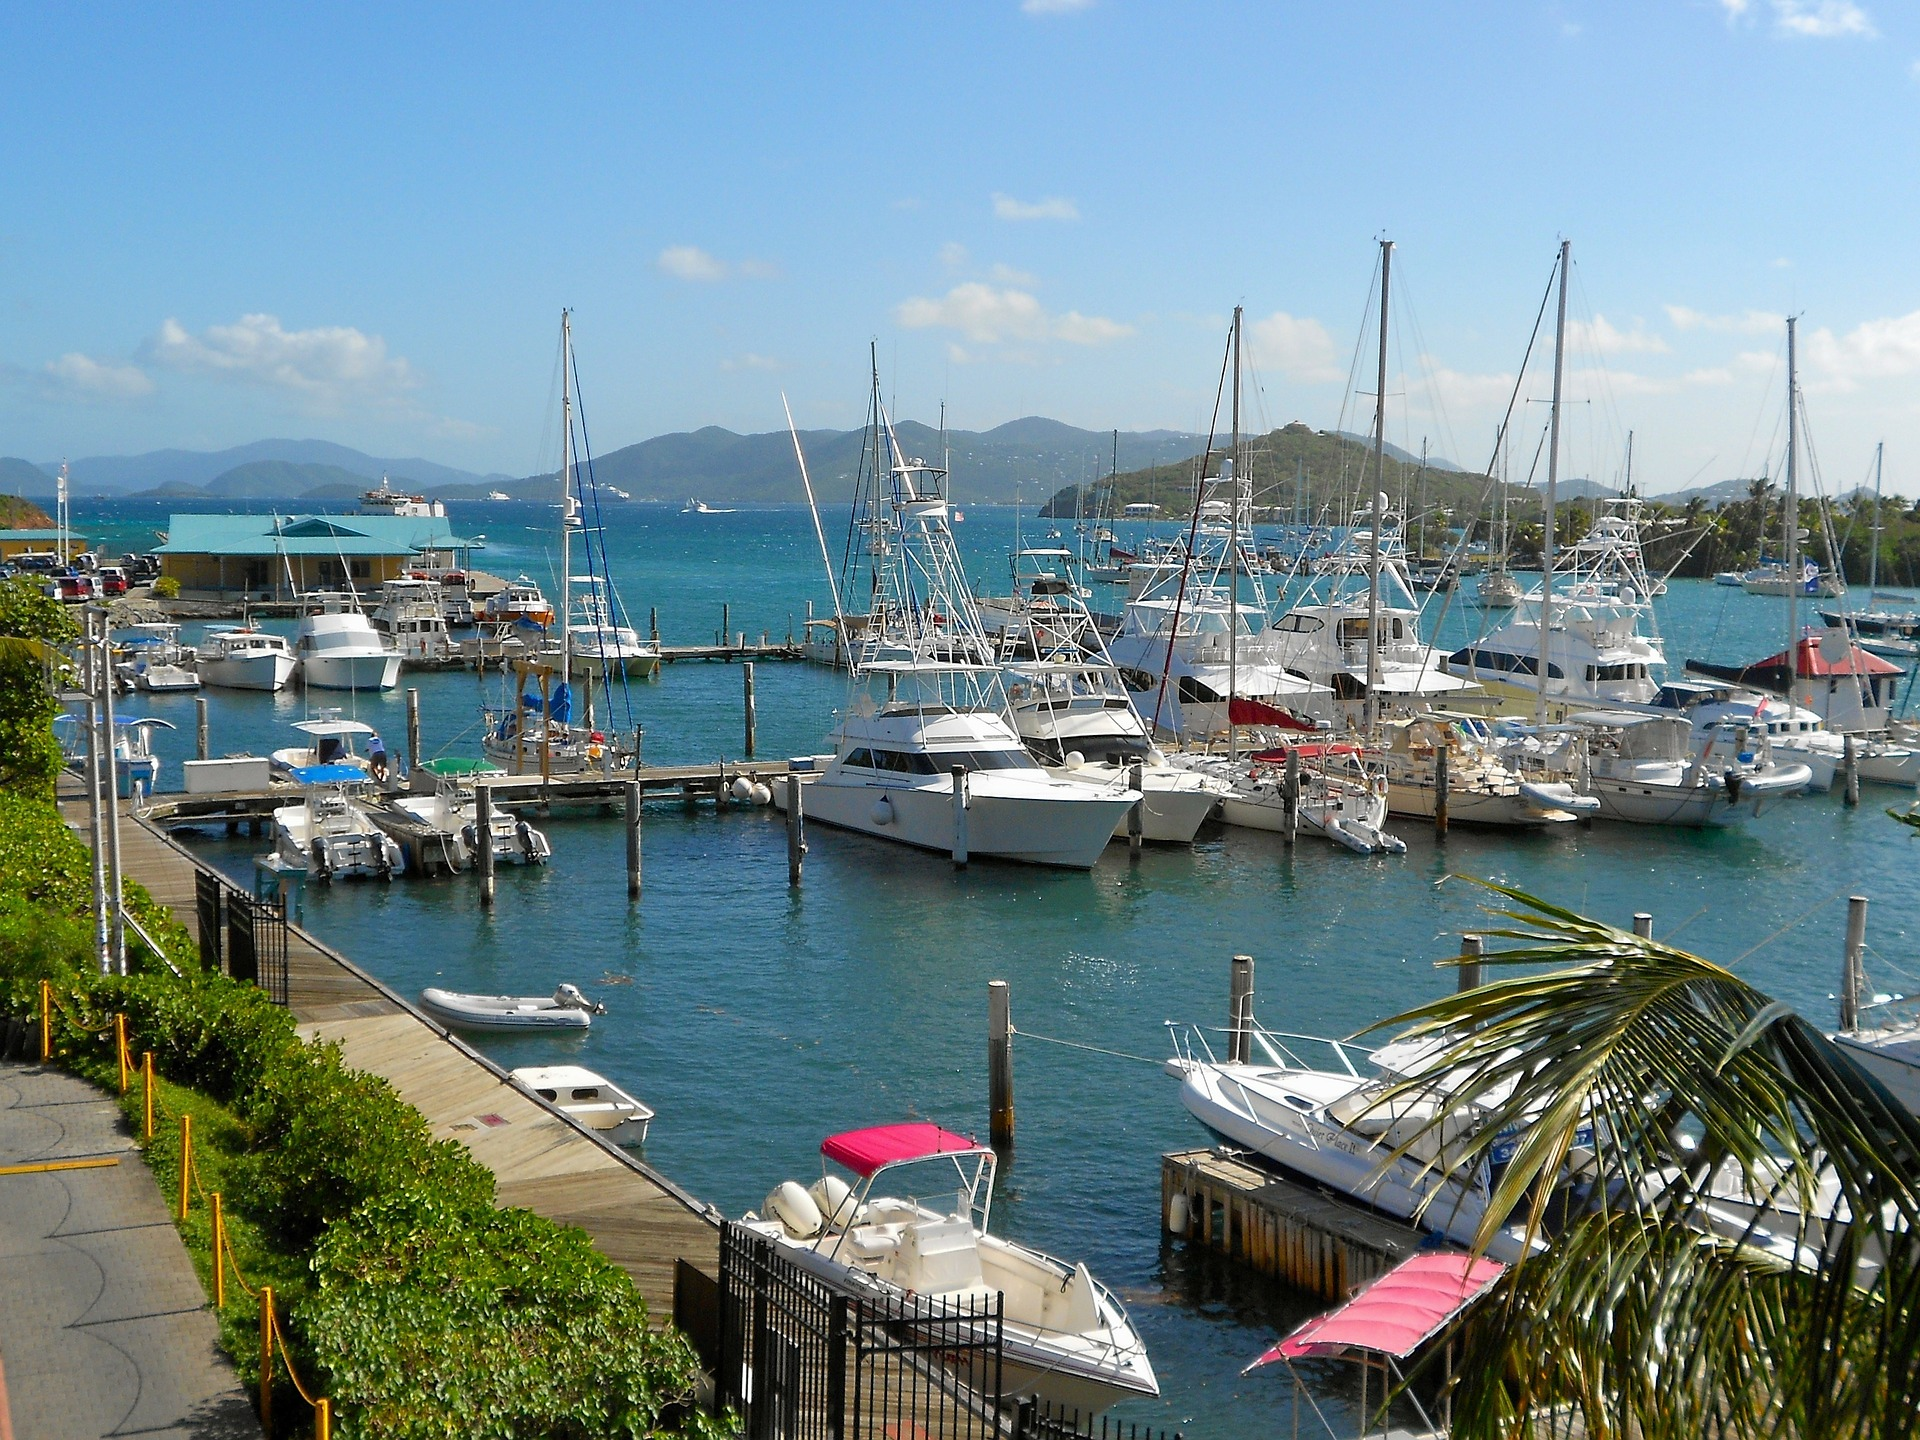 Boats in Marina - Caribbean